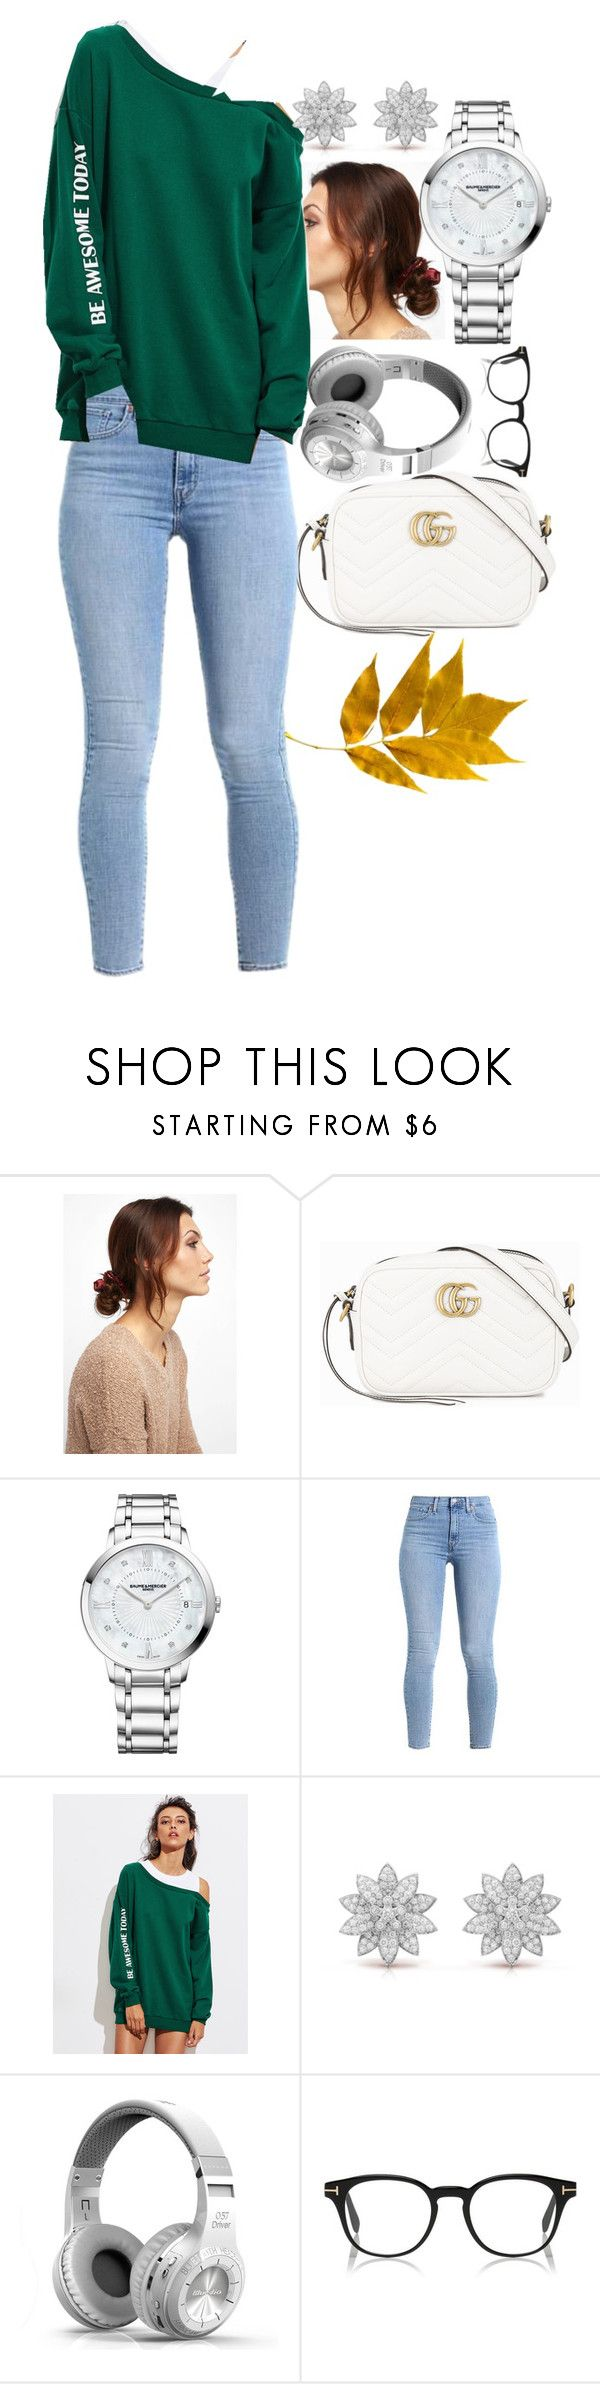 """""""Vanderwood"""" by cchryssa ❤ liked on Polyvore featuring NOVA, Gucci and Baume & Mercier"""